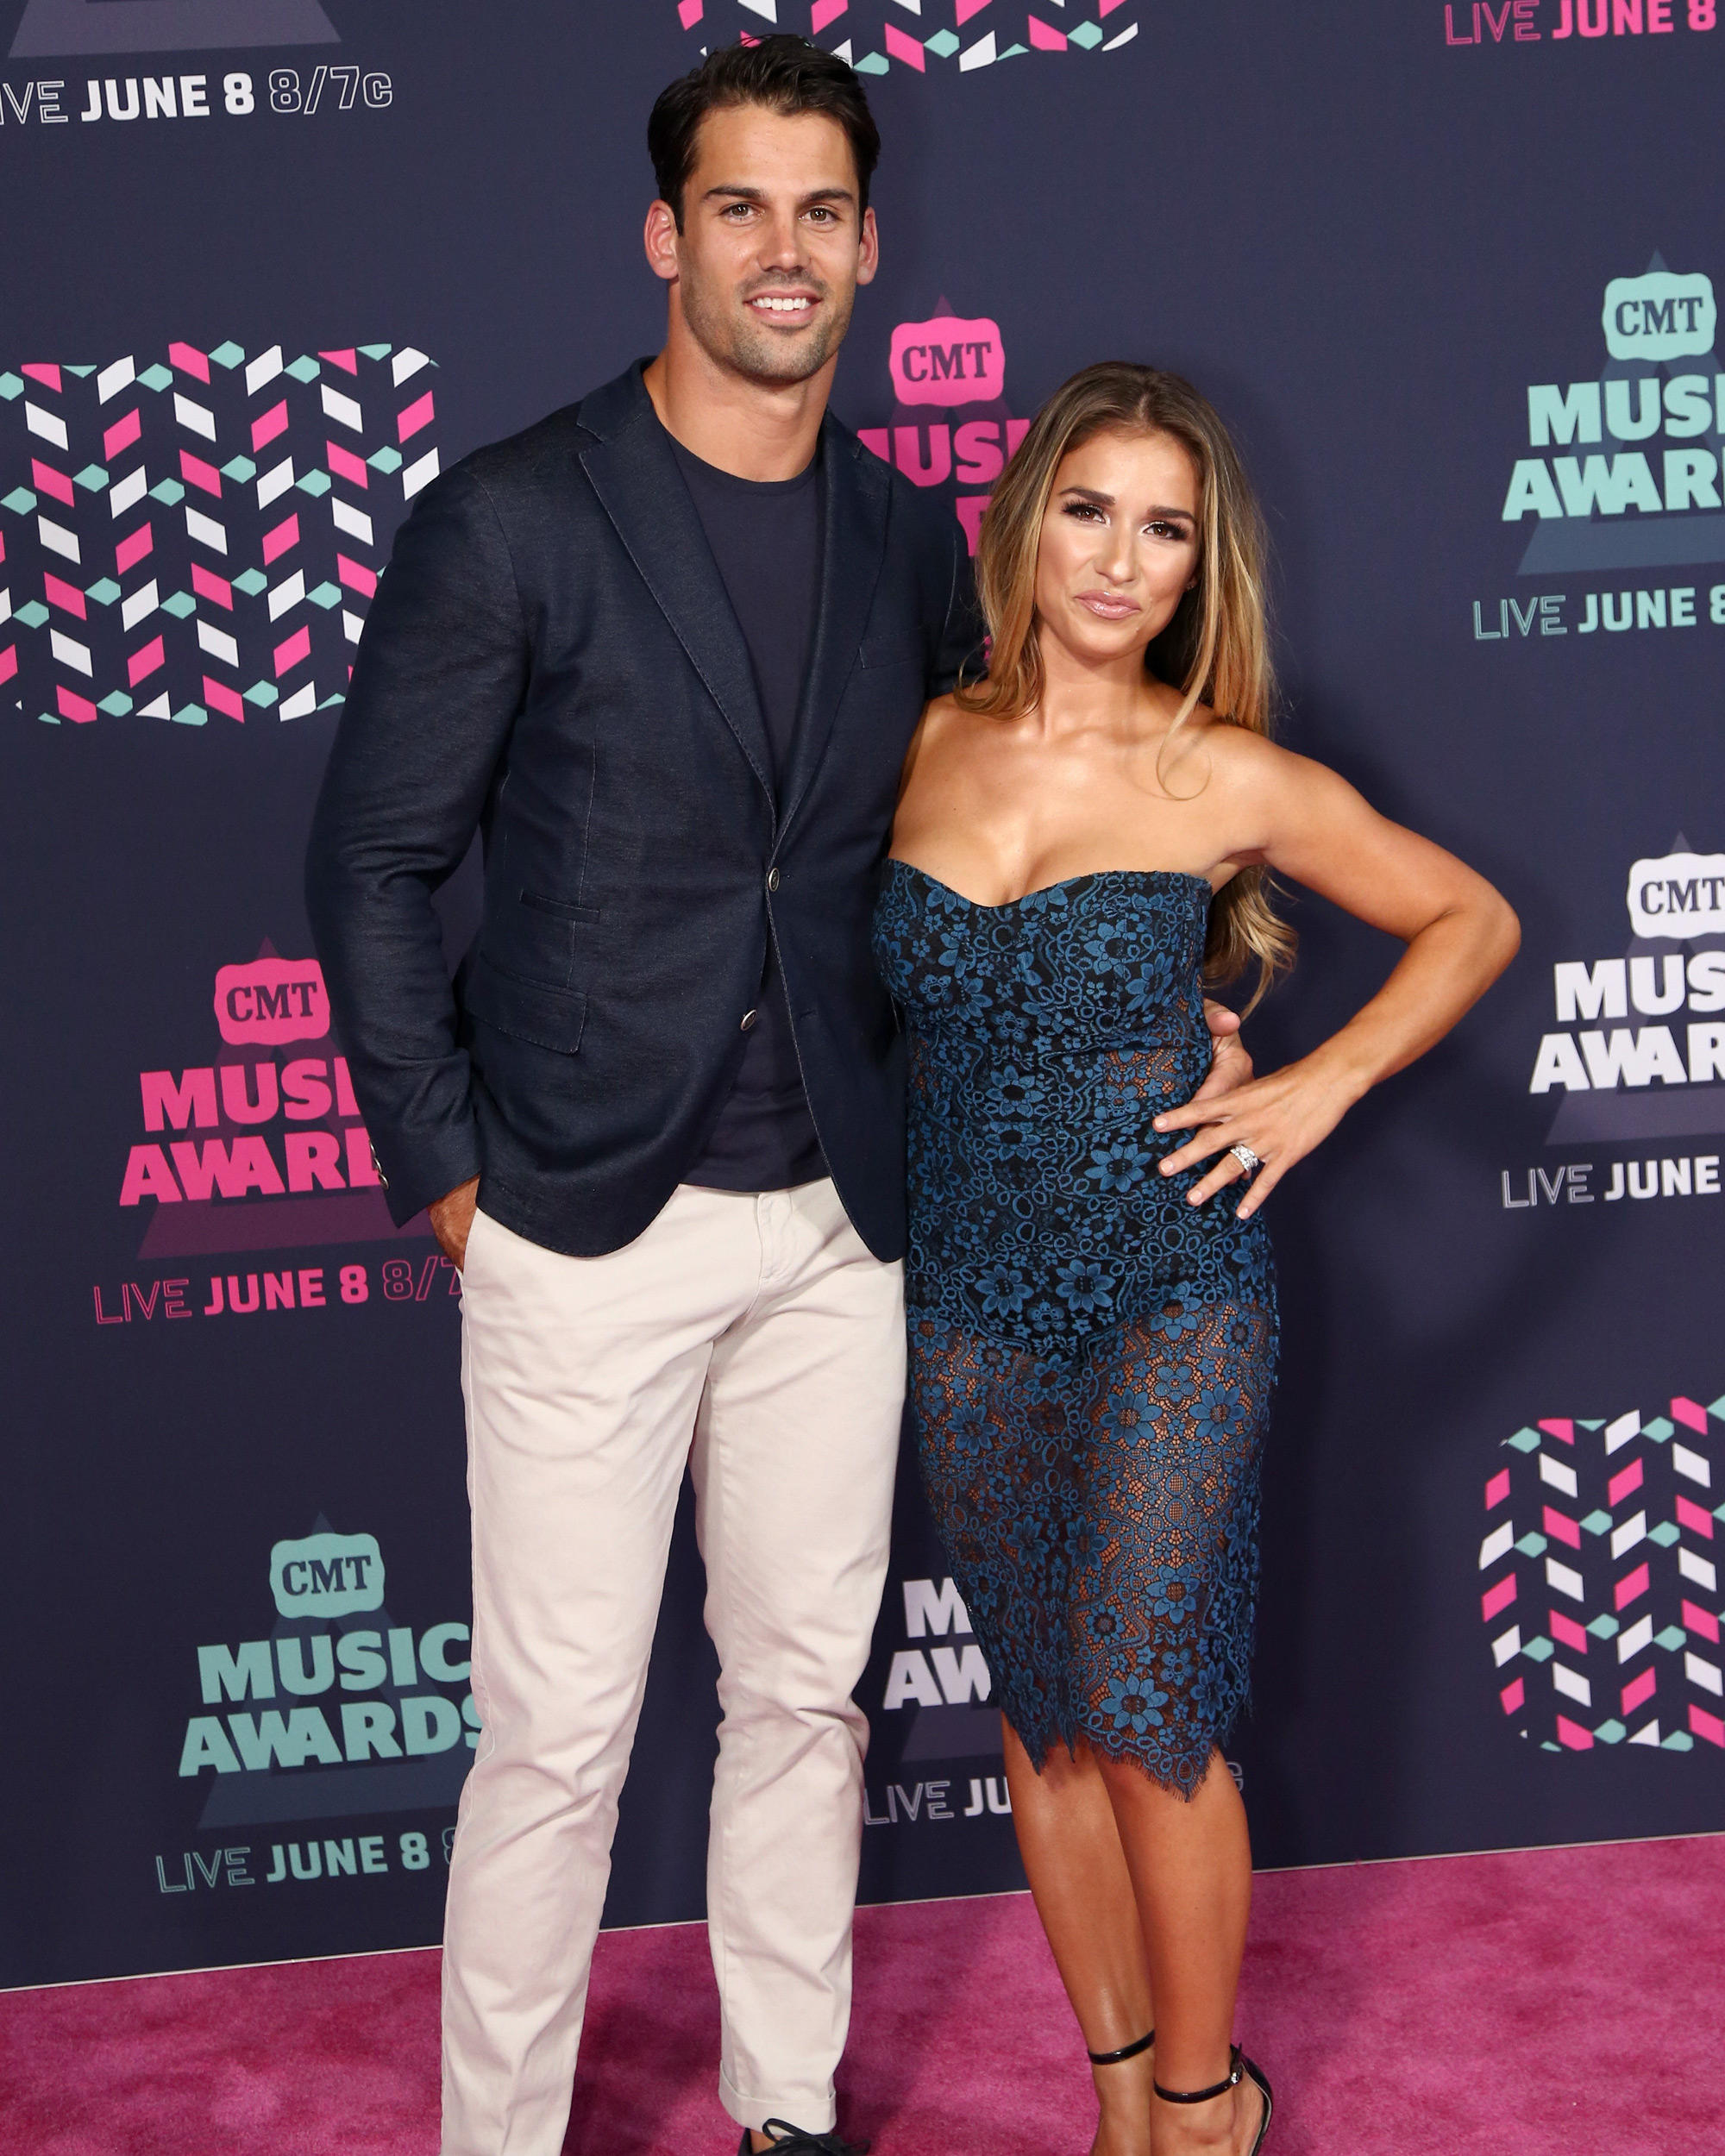 cmt-music-awards-eric-decker-jessie-james-decker-0616.jpg